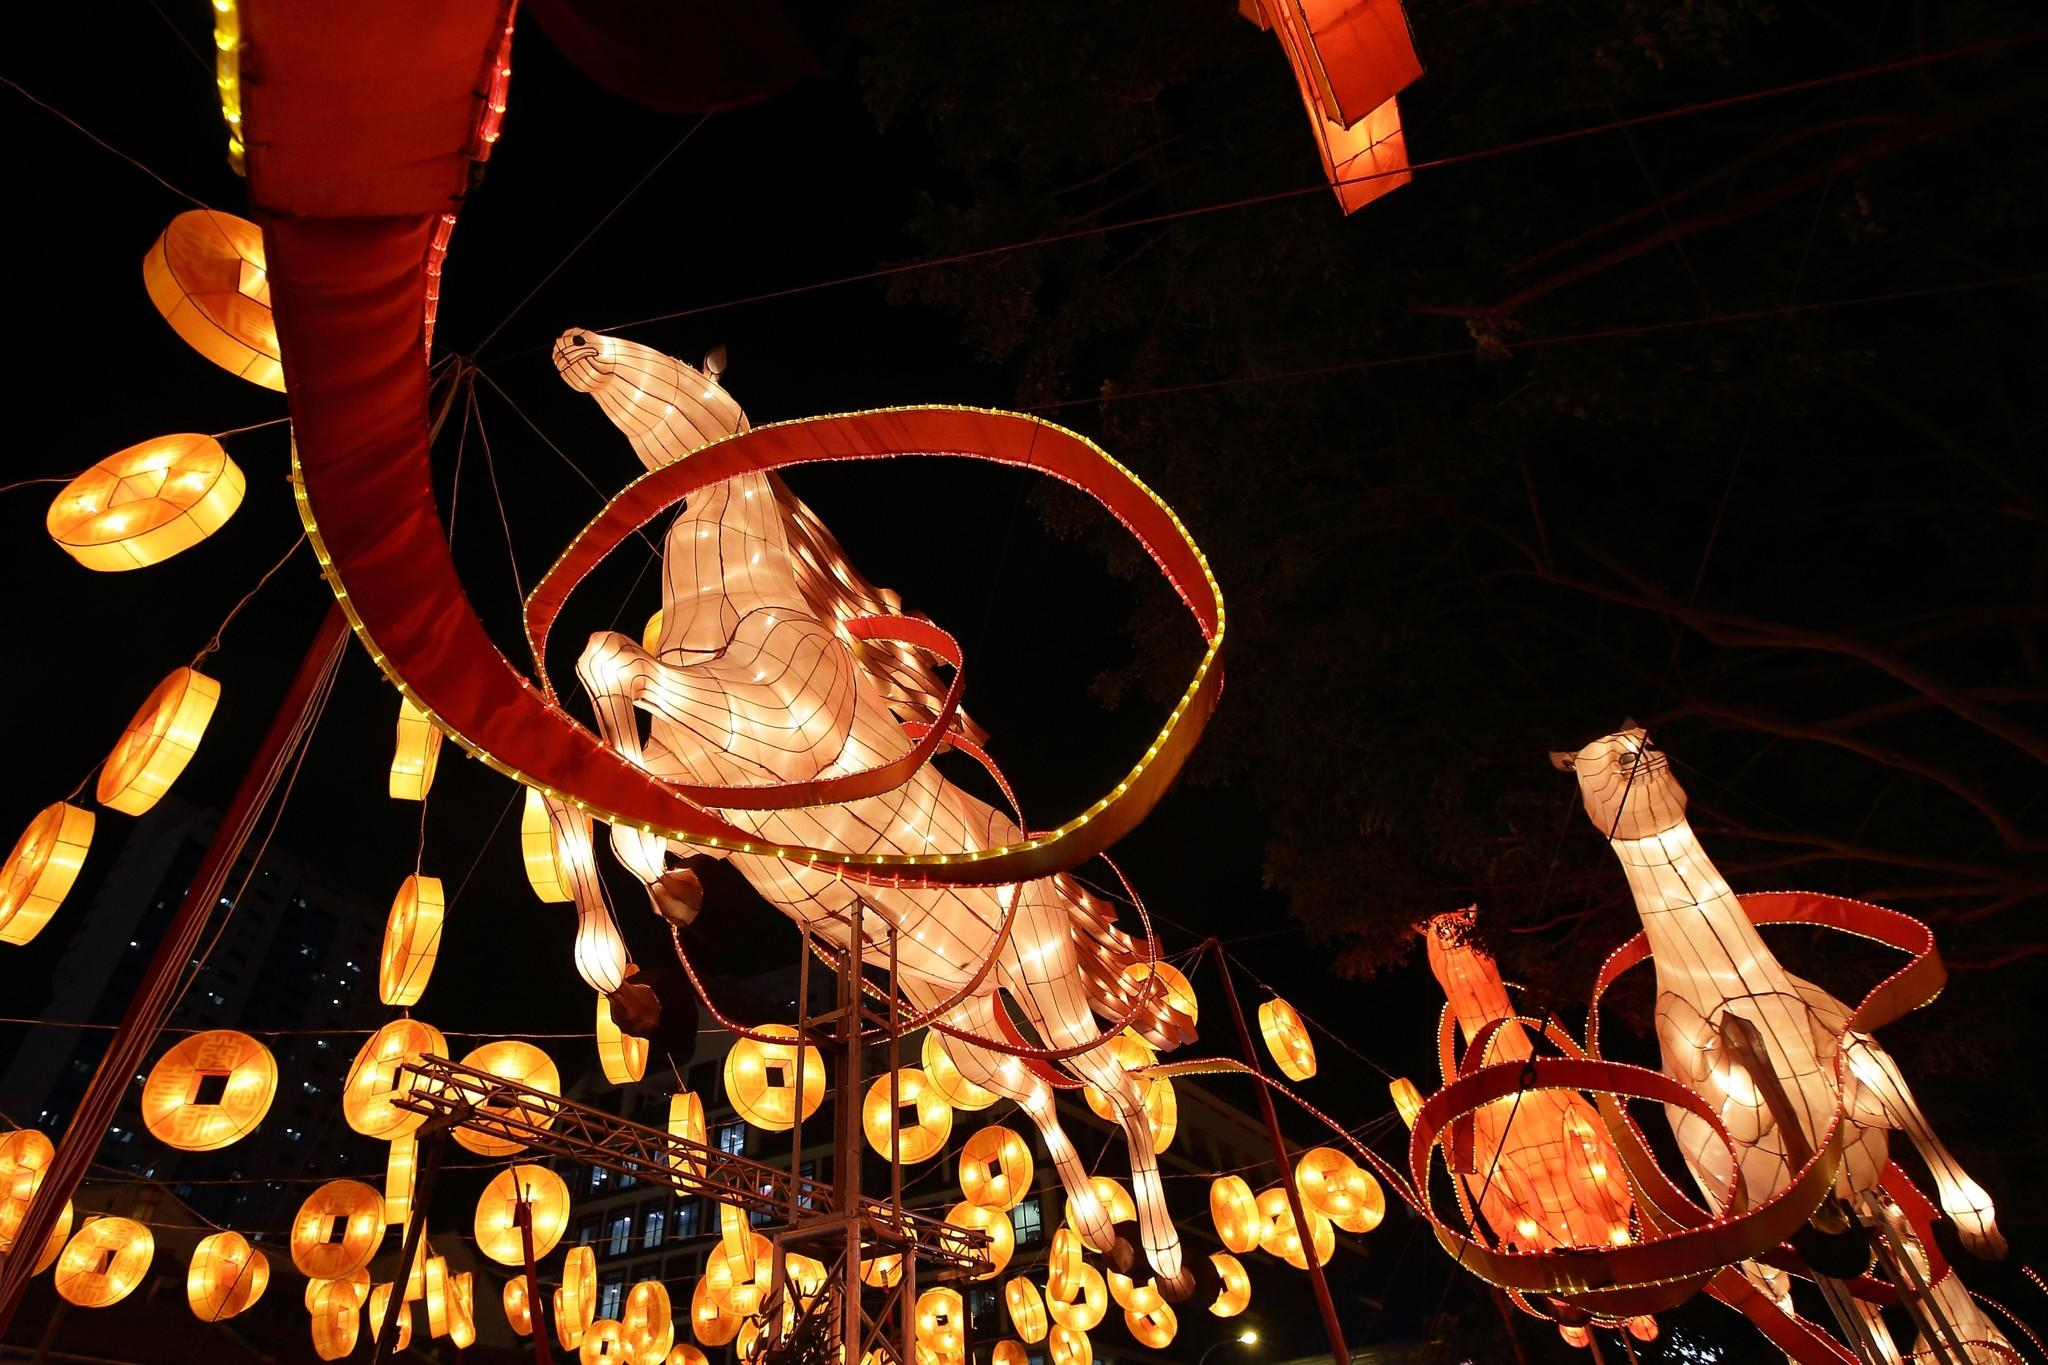 Life-size horses shaped lanterns and 'floating' gold coins adorn the streets of Chinatown on January 11, 2014 in Singapore. On January 31st, people around the world will welcome the Year of the Horse, one of the most anticipated holidays of the Chinese calendar. Also known as the Spring festival or the Lunar New Year, the celebrations last for about 15 days.